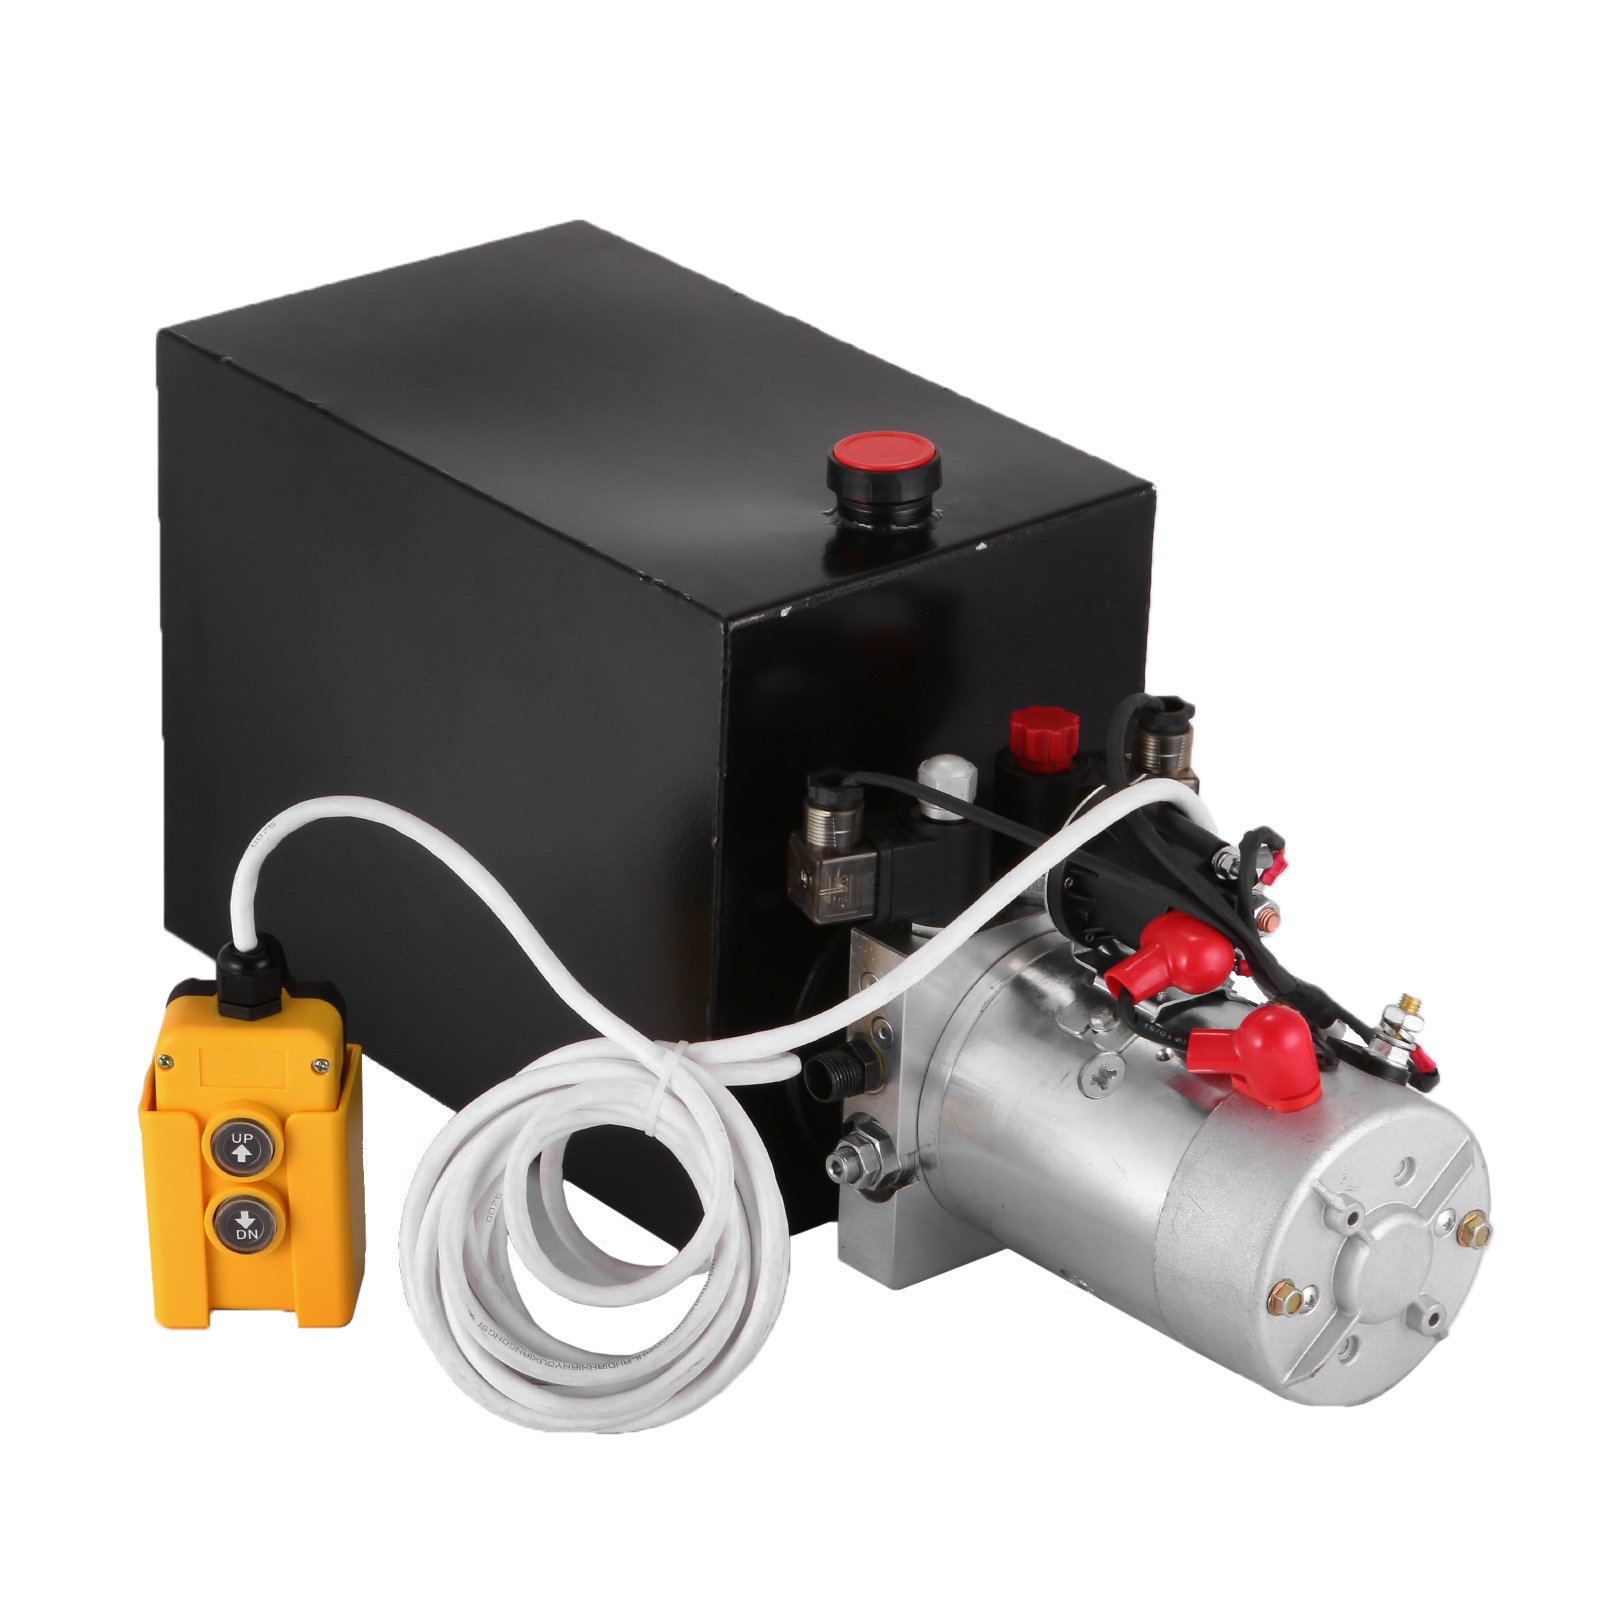 BestEquip 12V Hydraulic Pump 15 Quart Metal Reservoir Hydraulic Power Unit Double Acting Electric Dump Trailer Pump for Dump Trailers (15 Quart Double Acting)